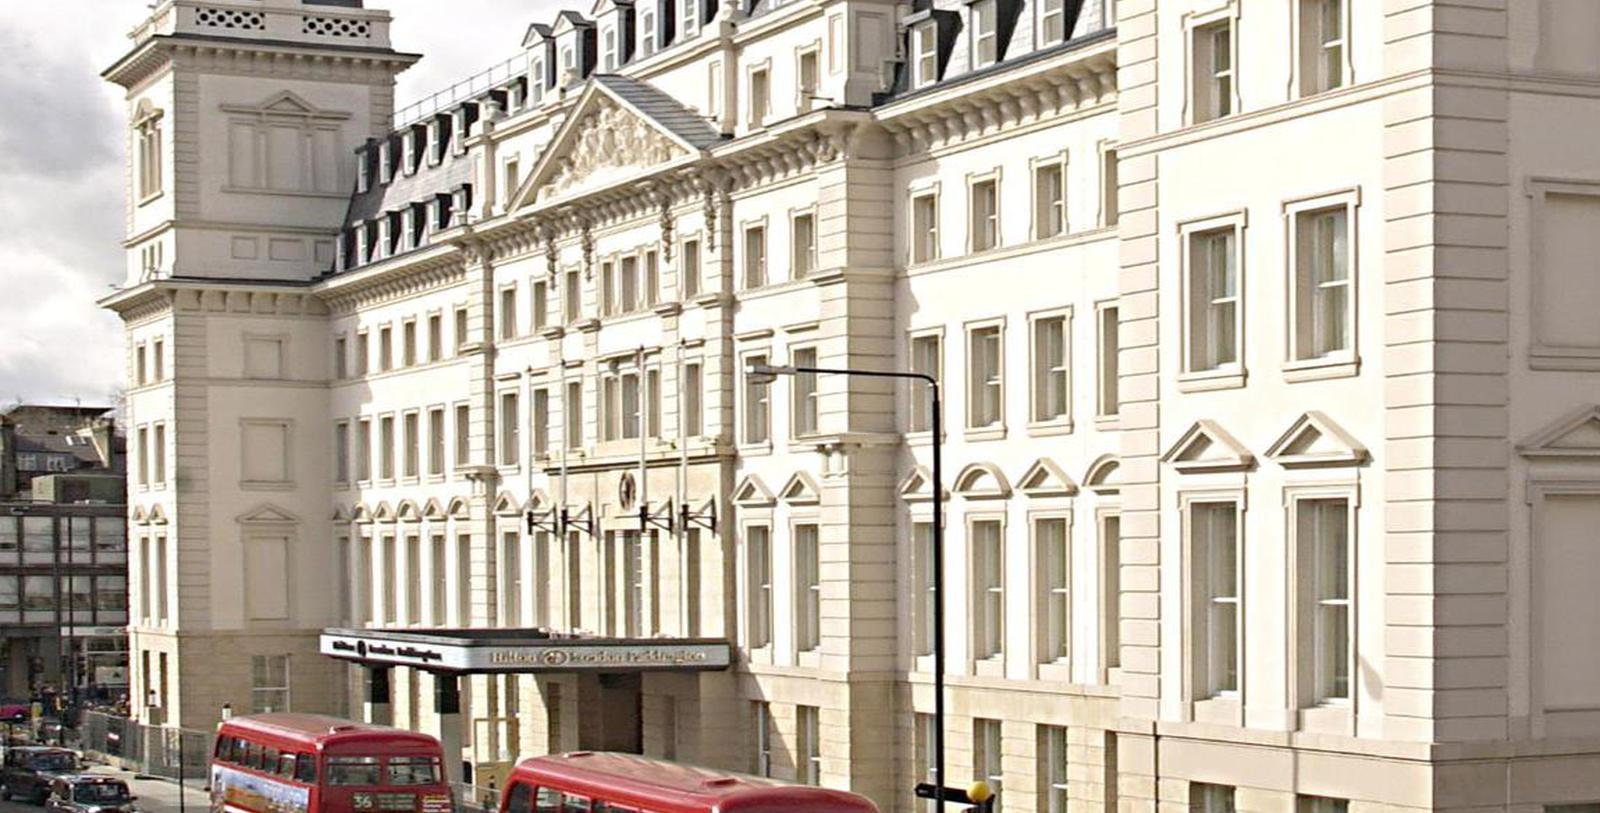 Daytime exterior of the Hilton London Paddington in London, England with double decker buses.